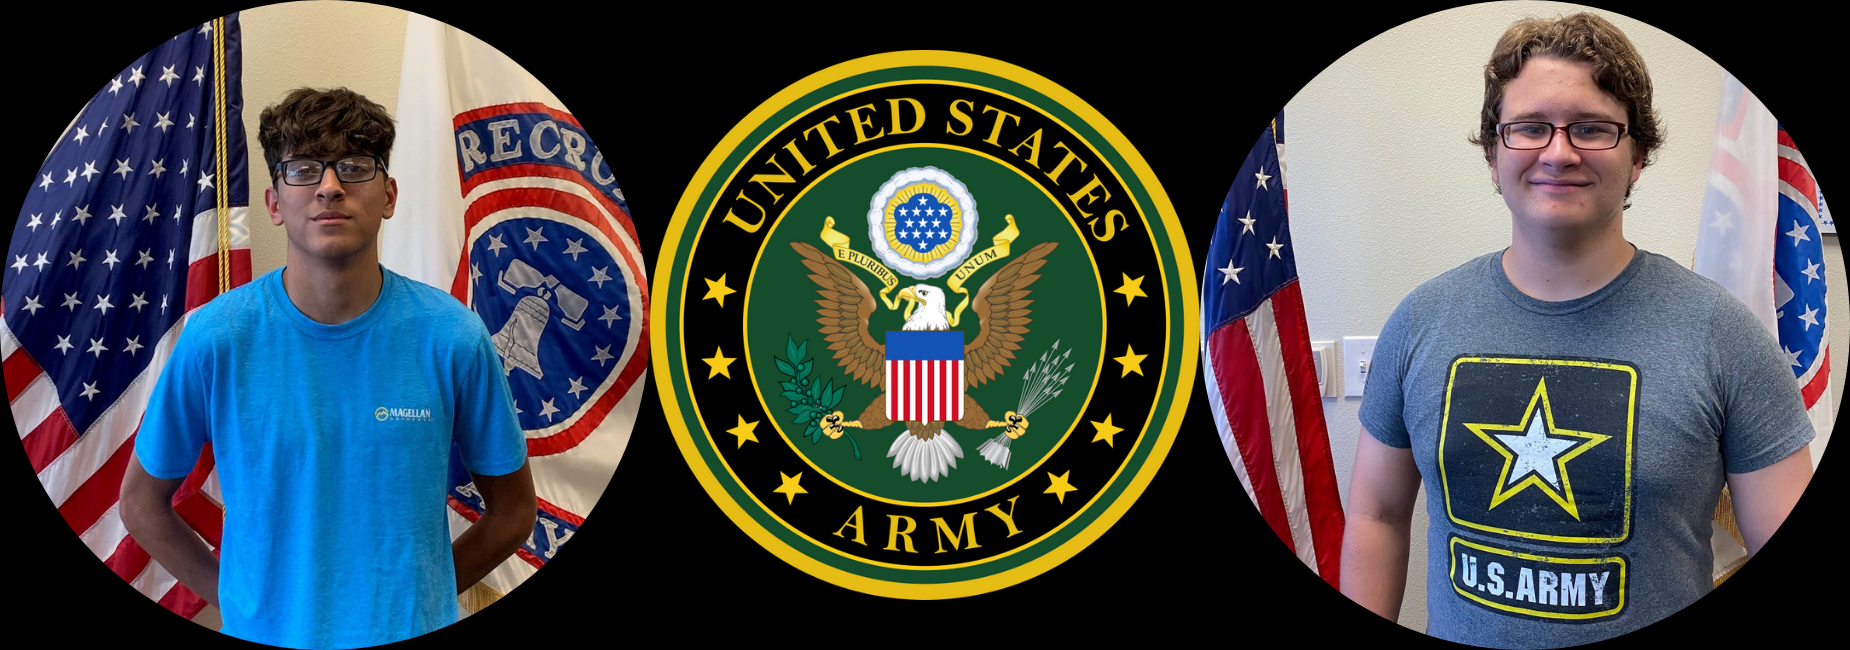 pictures of 2 young men in front of the american flag and the US Army logo